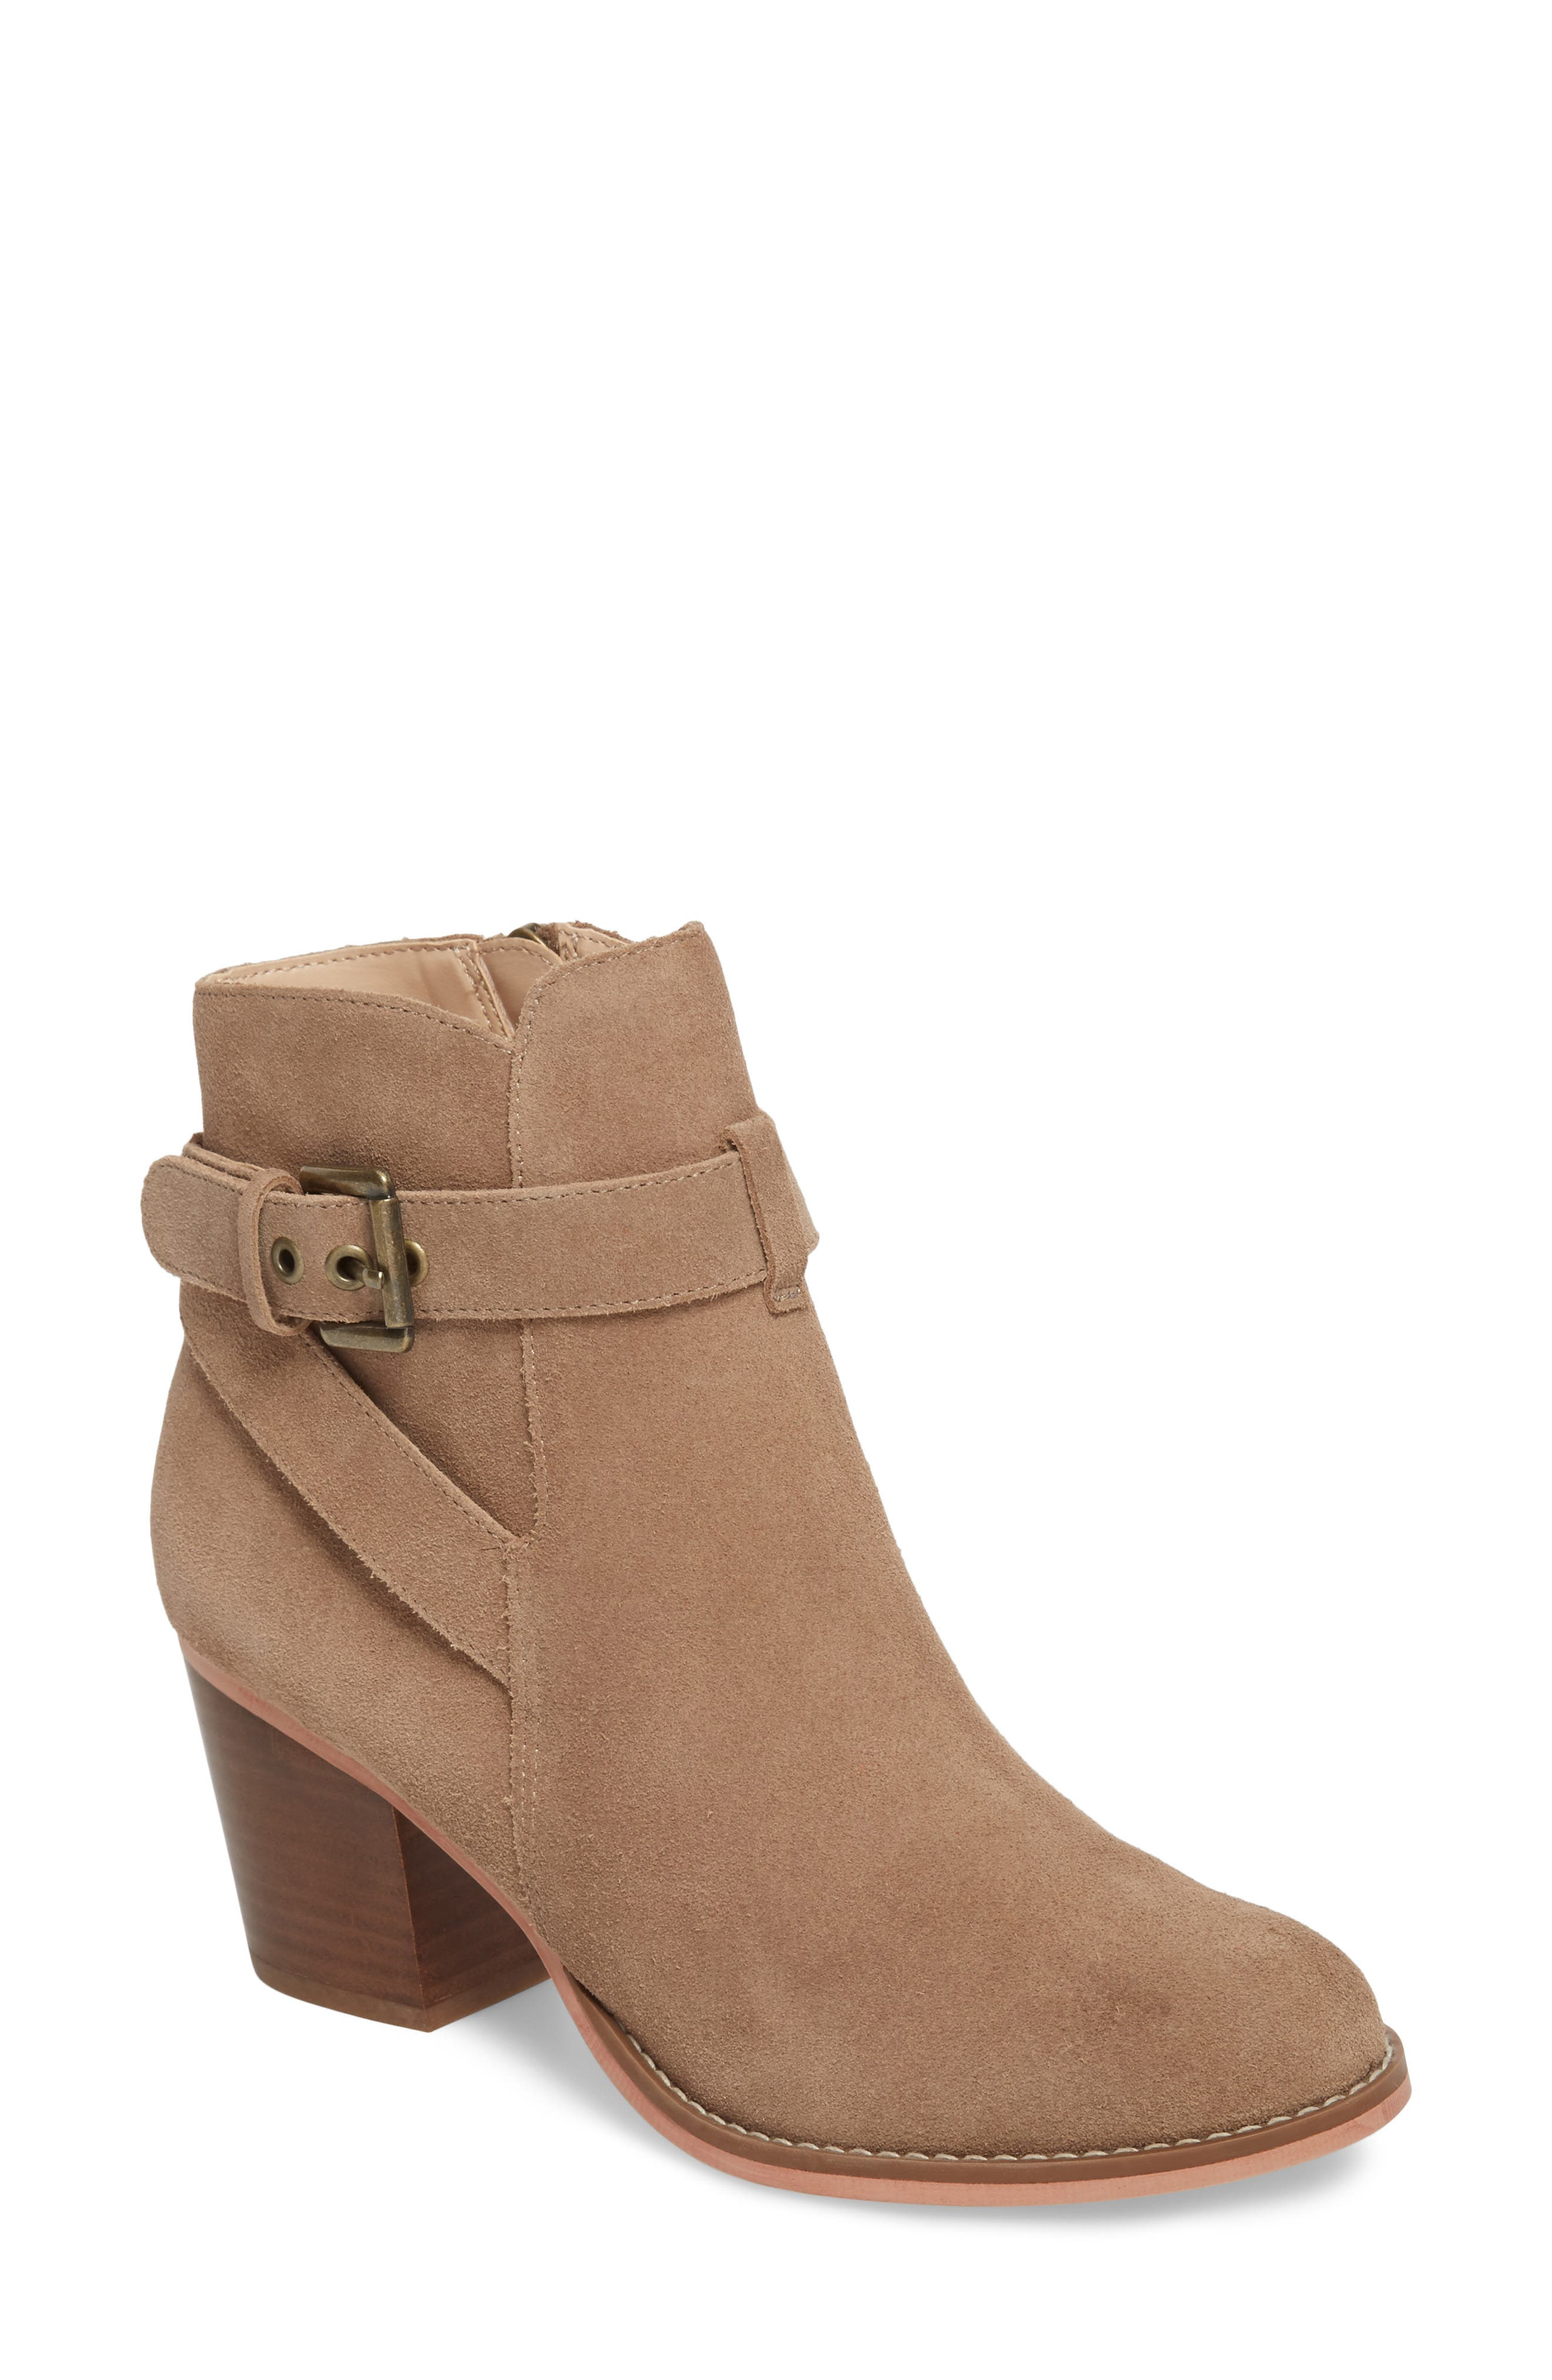 Alternate Image 1 Selected - Sole Society Paislee Buckle Strap Bootie (Women)